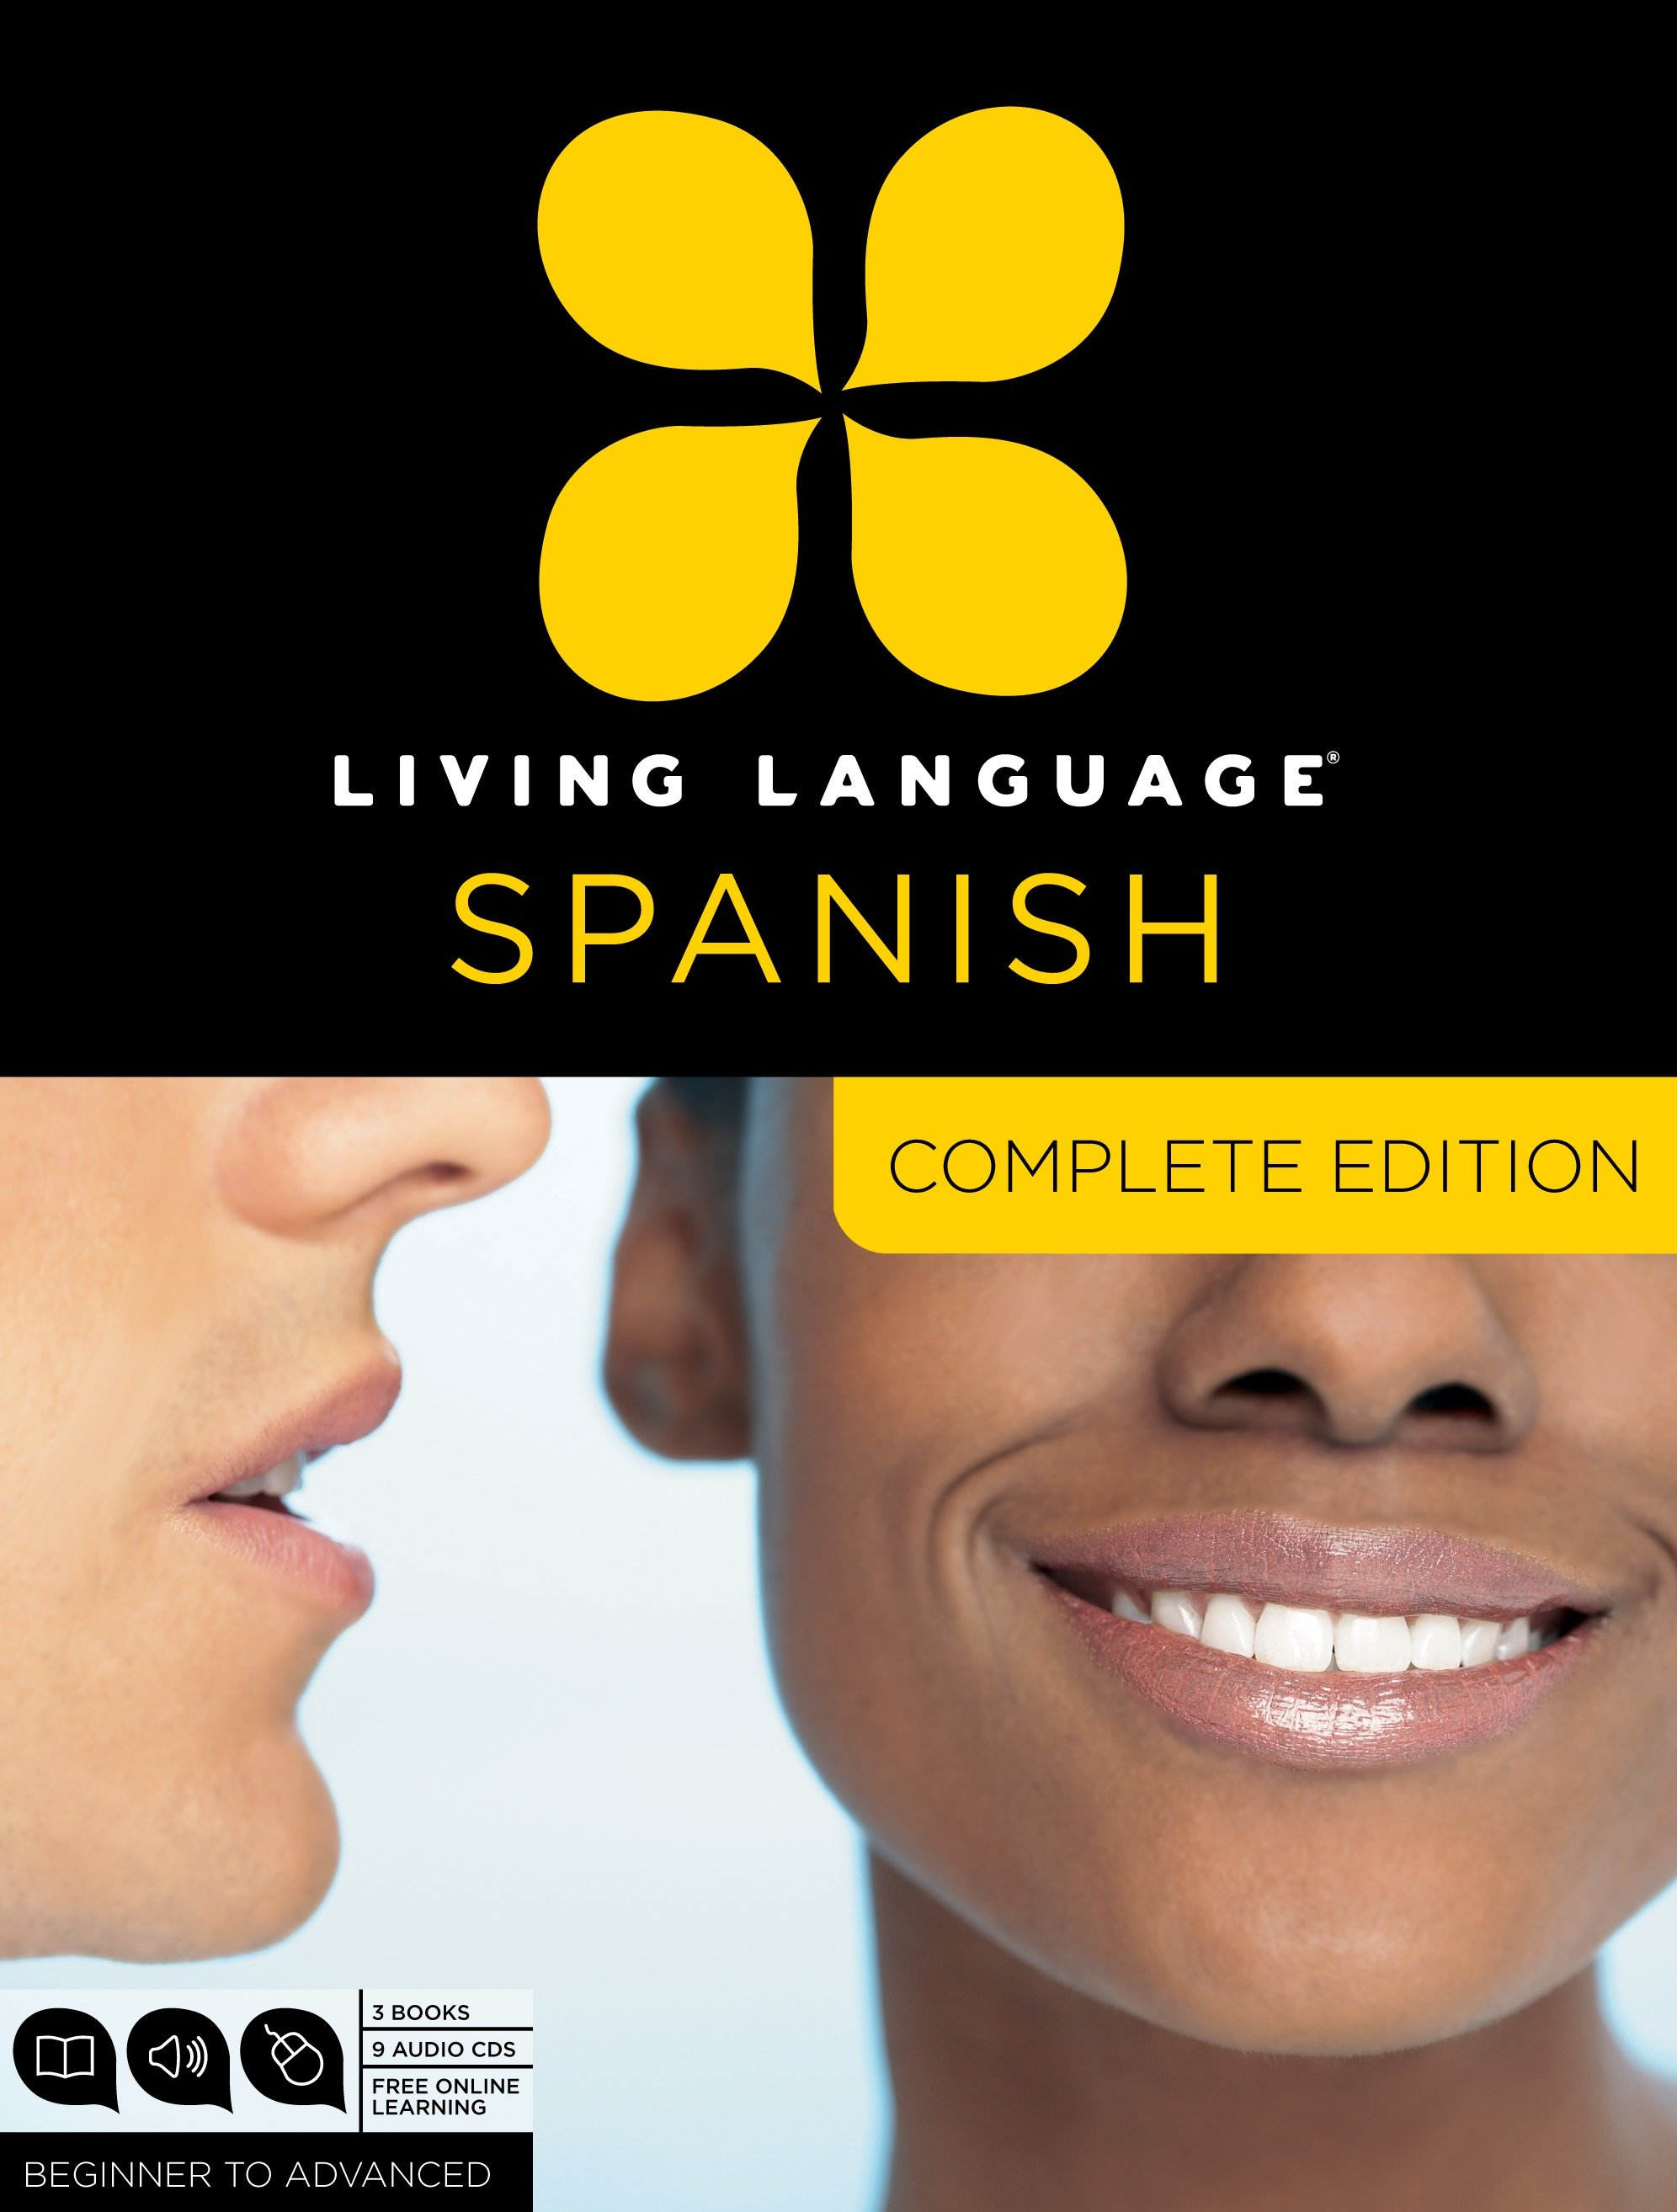 Living Language Spanish, Complete Edition : Beginner through advanced  course, including 3 coursebooks, 9 audio CDs, and free online learning